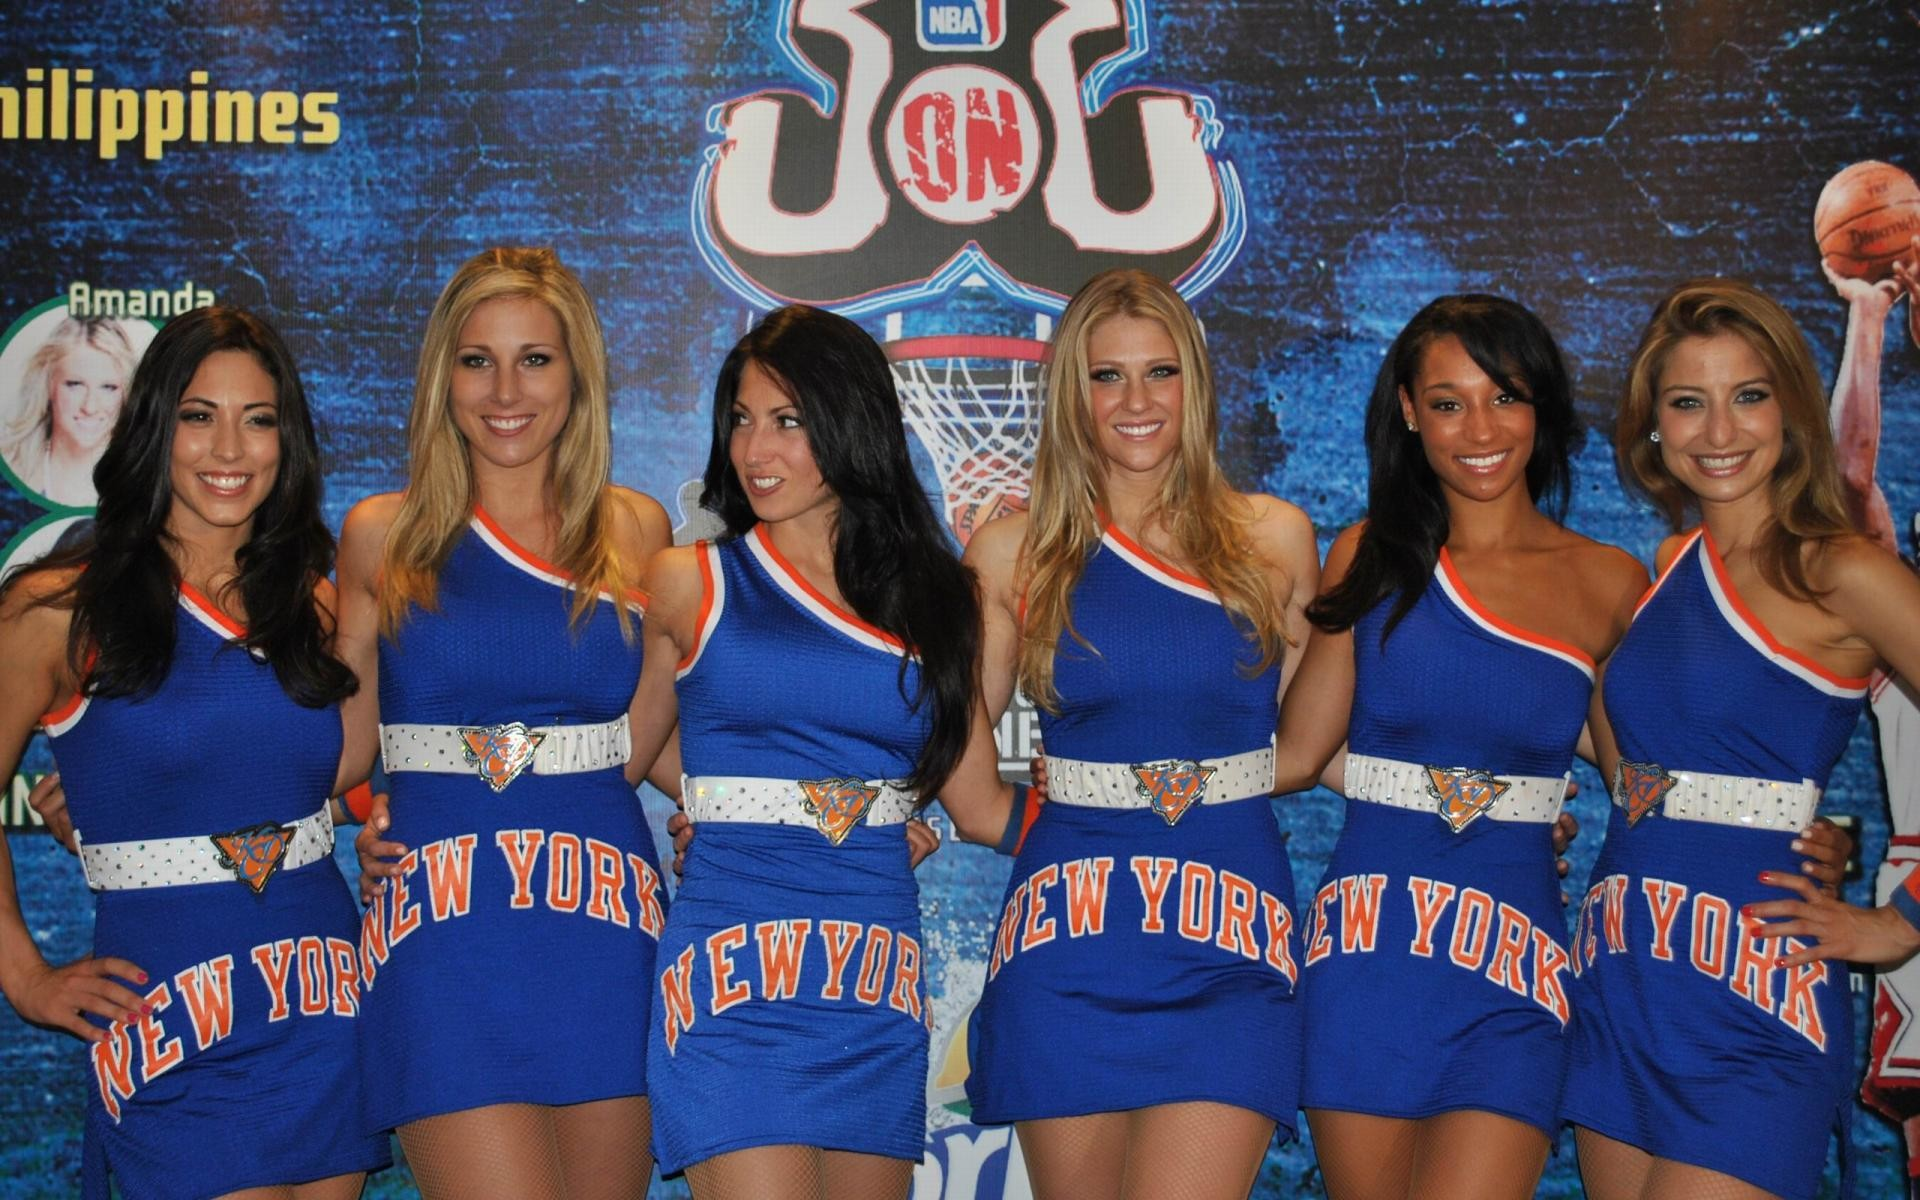 1920x1200 New York Knicks cheerleader basketball nba f wallpaper |  | 159764  | WallpaperUP